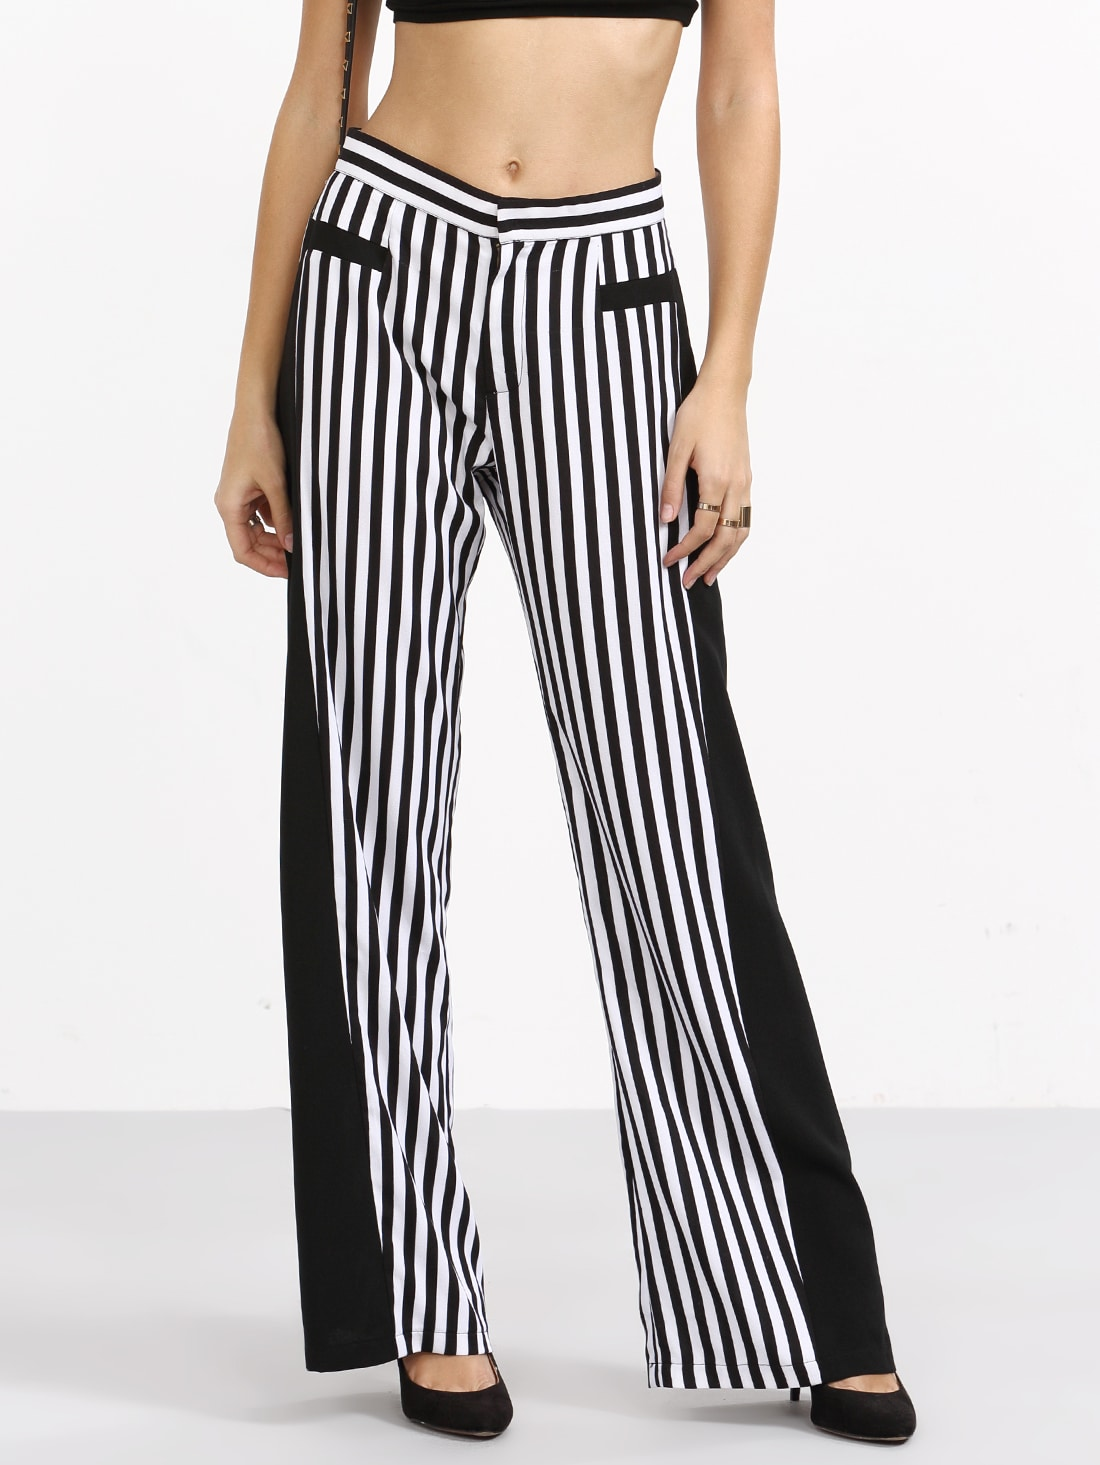 Jun 17,  · Black and white striped pants are probably the most popular option, and also the most versatile. Keep them simple by wearing them with sneakers and a solid colored tee. Source.